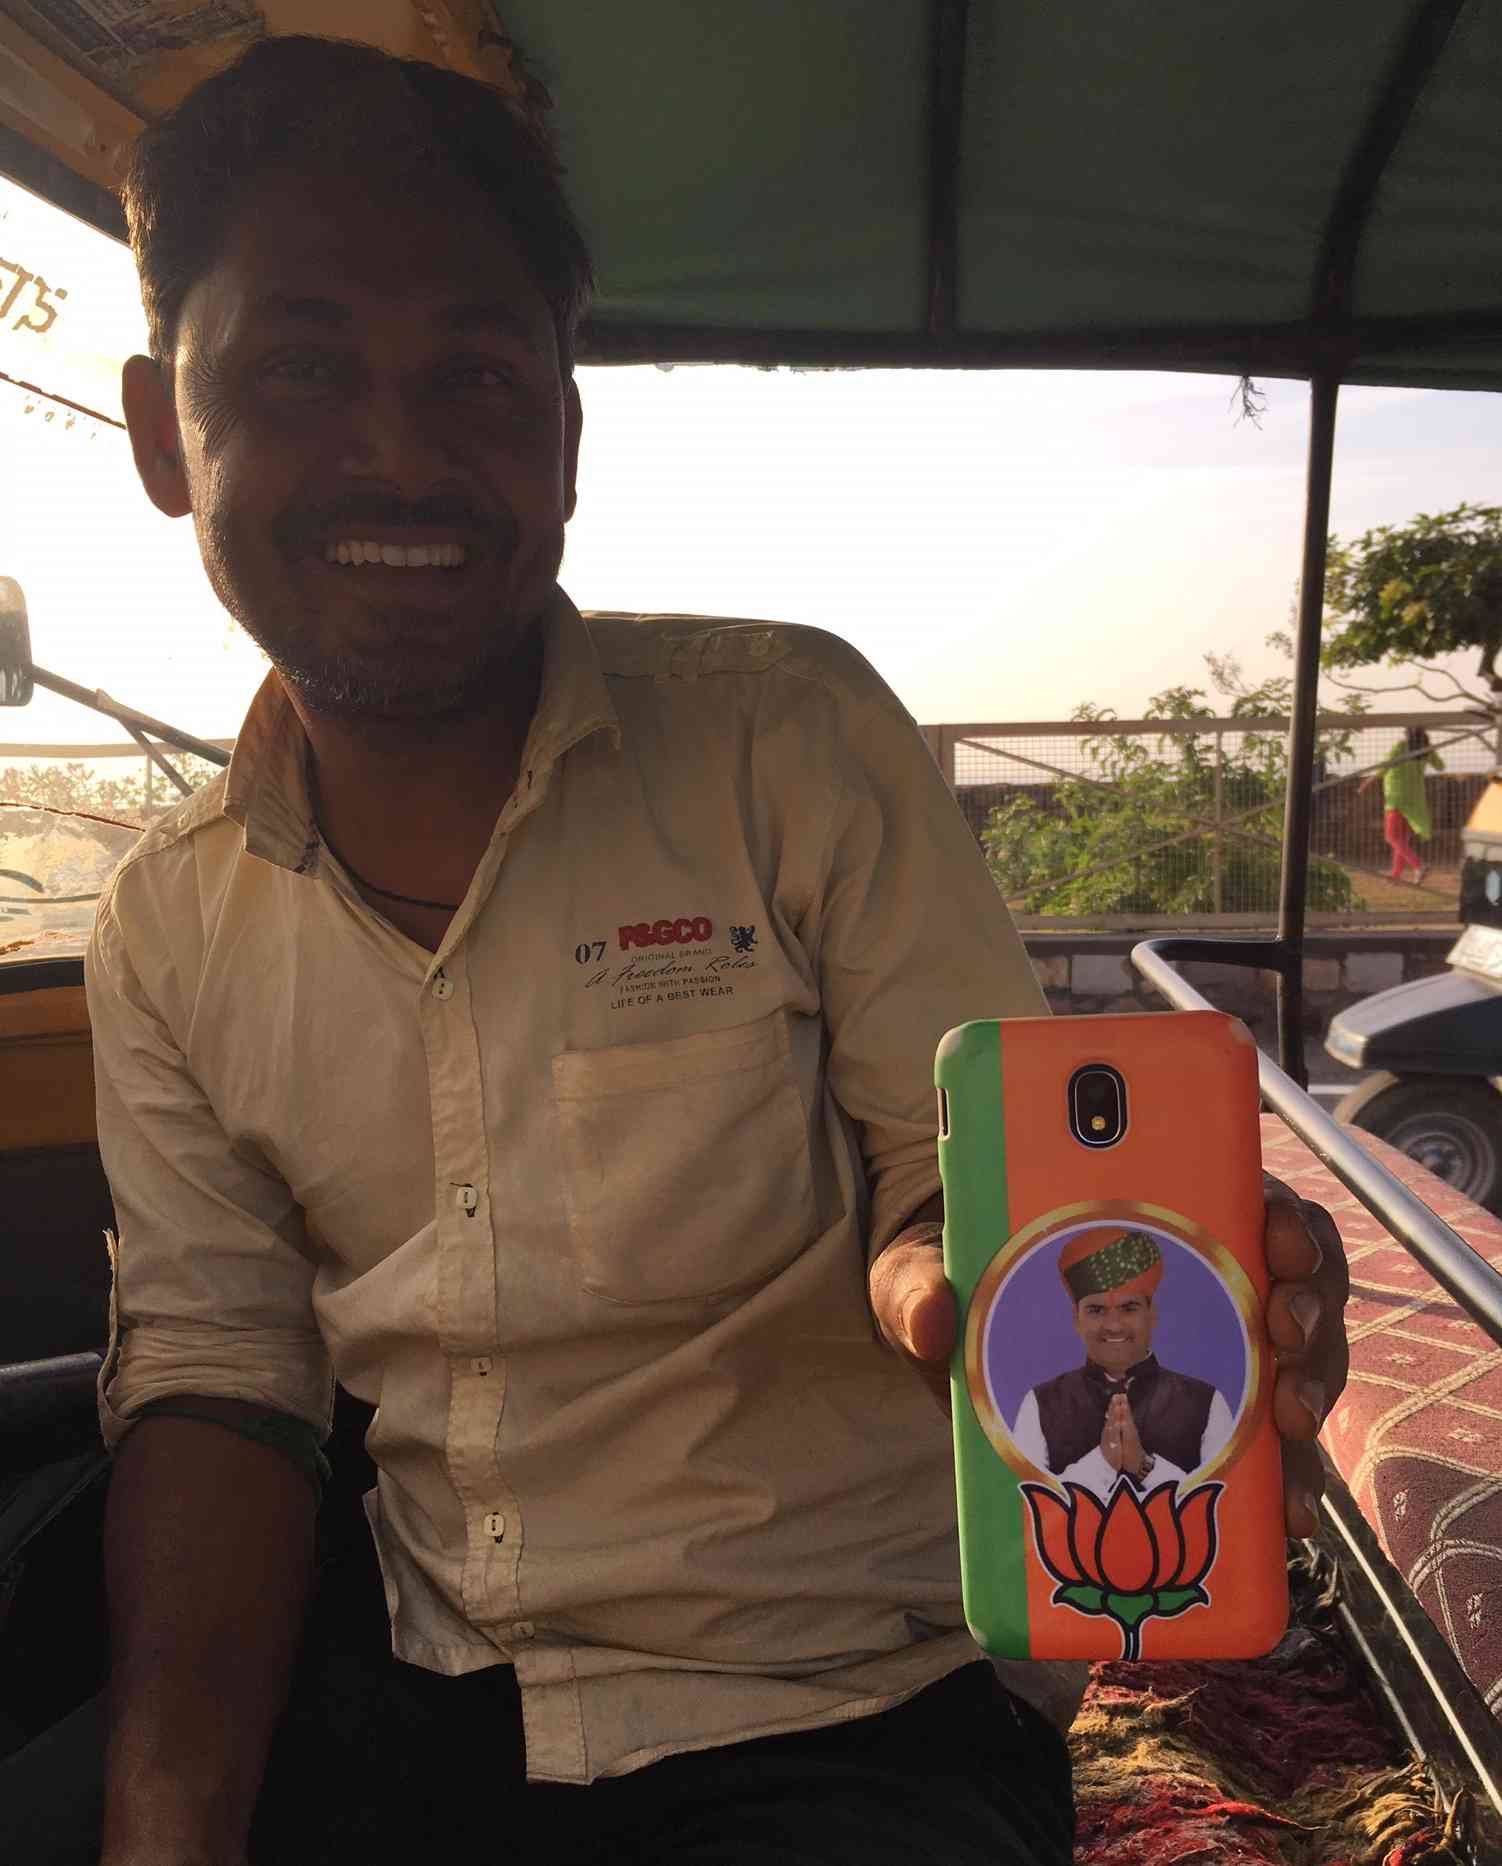 A BJP supporter in Chittorgarh. The district was the epicentre of the Padmaavat protests by Rajputs in 2017.